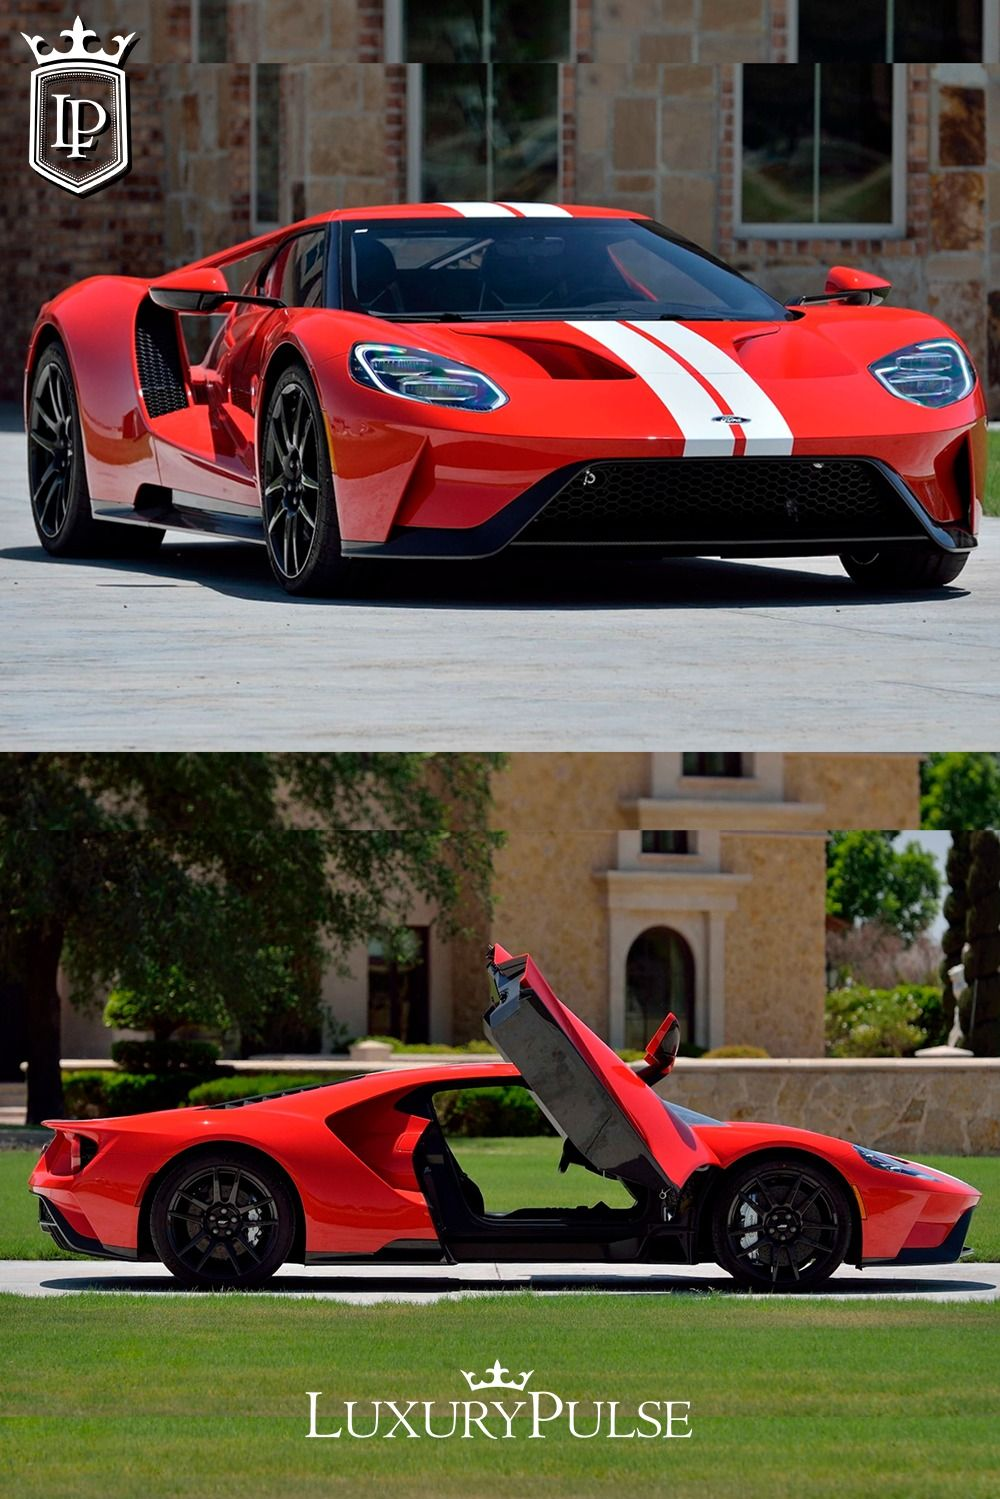 Ford Gt In 2020 Ford Gt Luxury Cars Cars For Sale